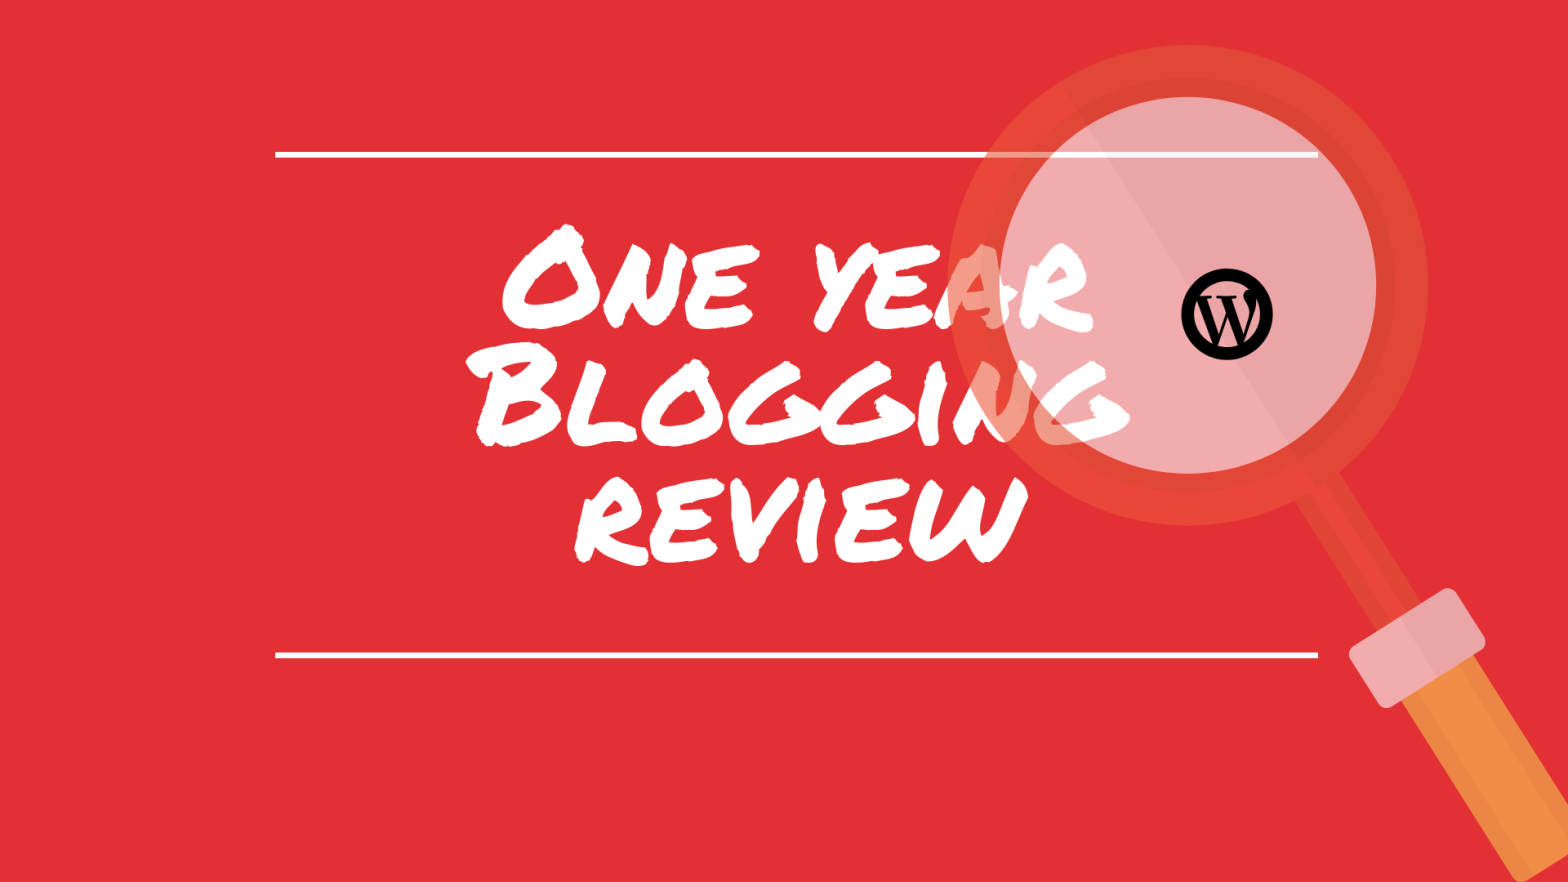 one year Blogging review